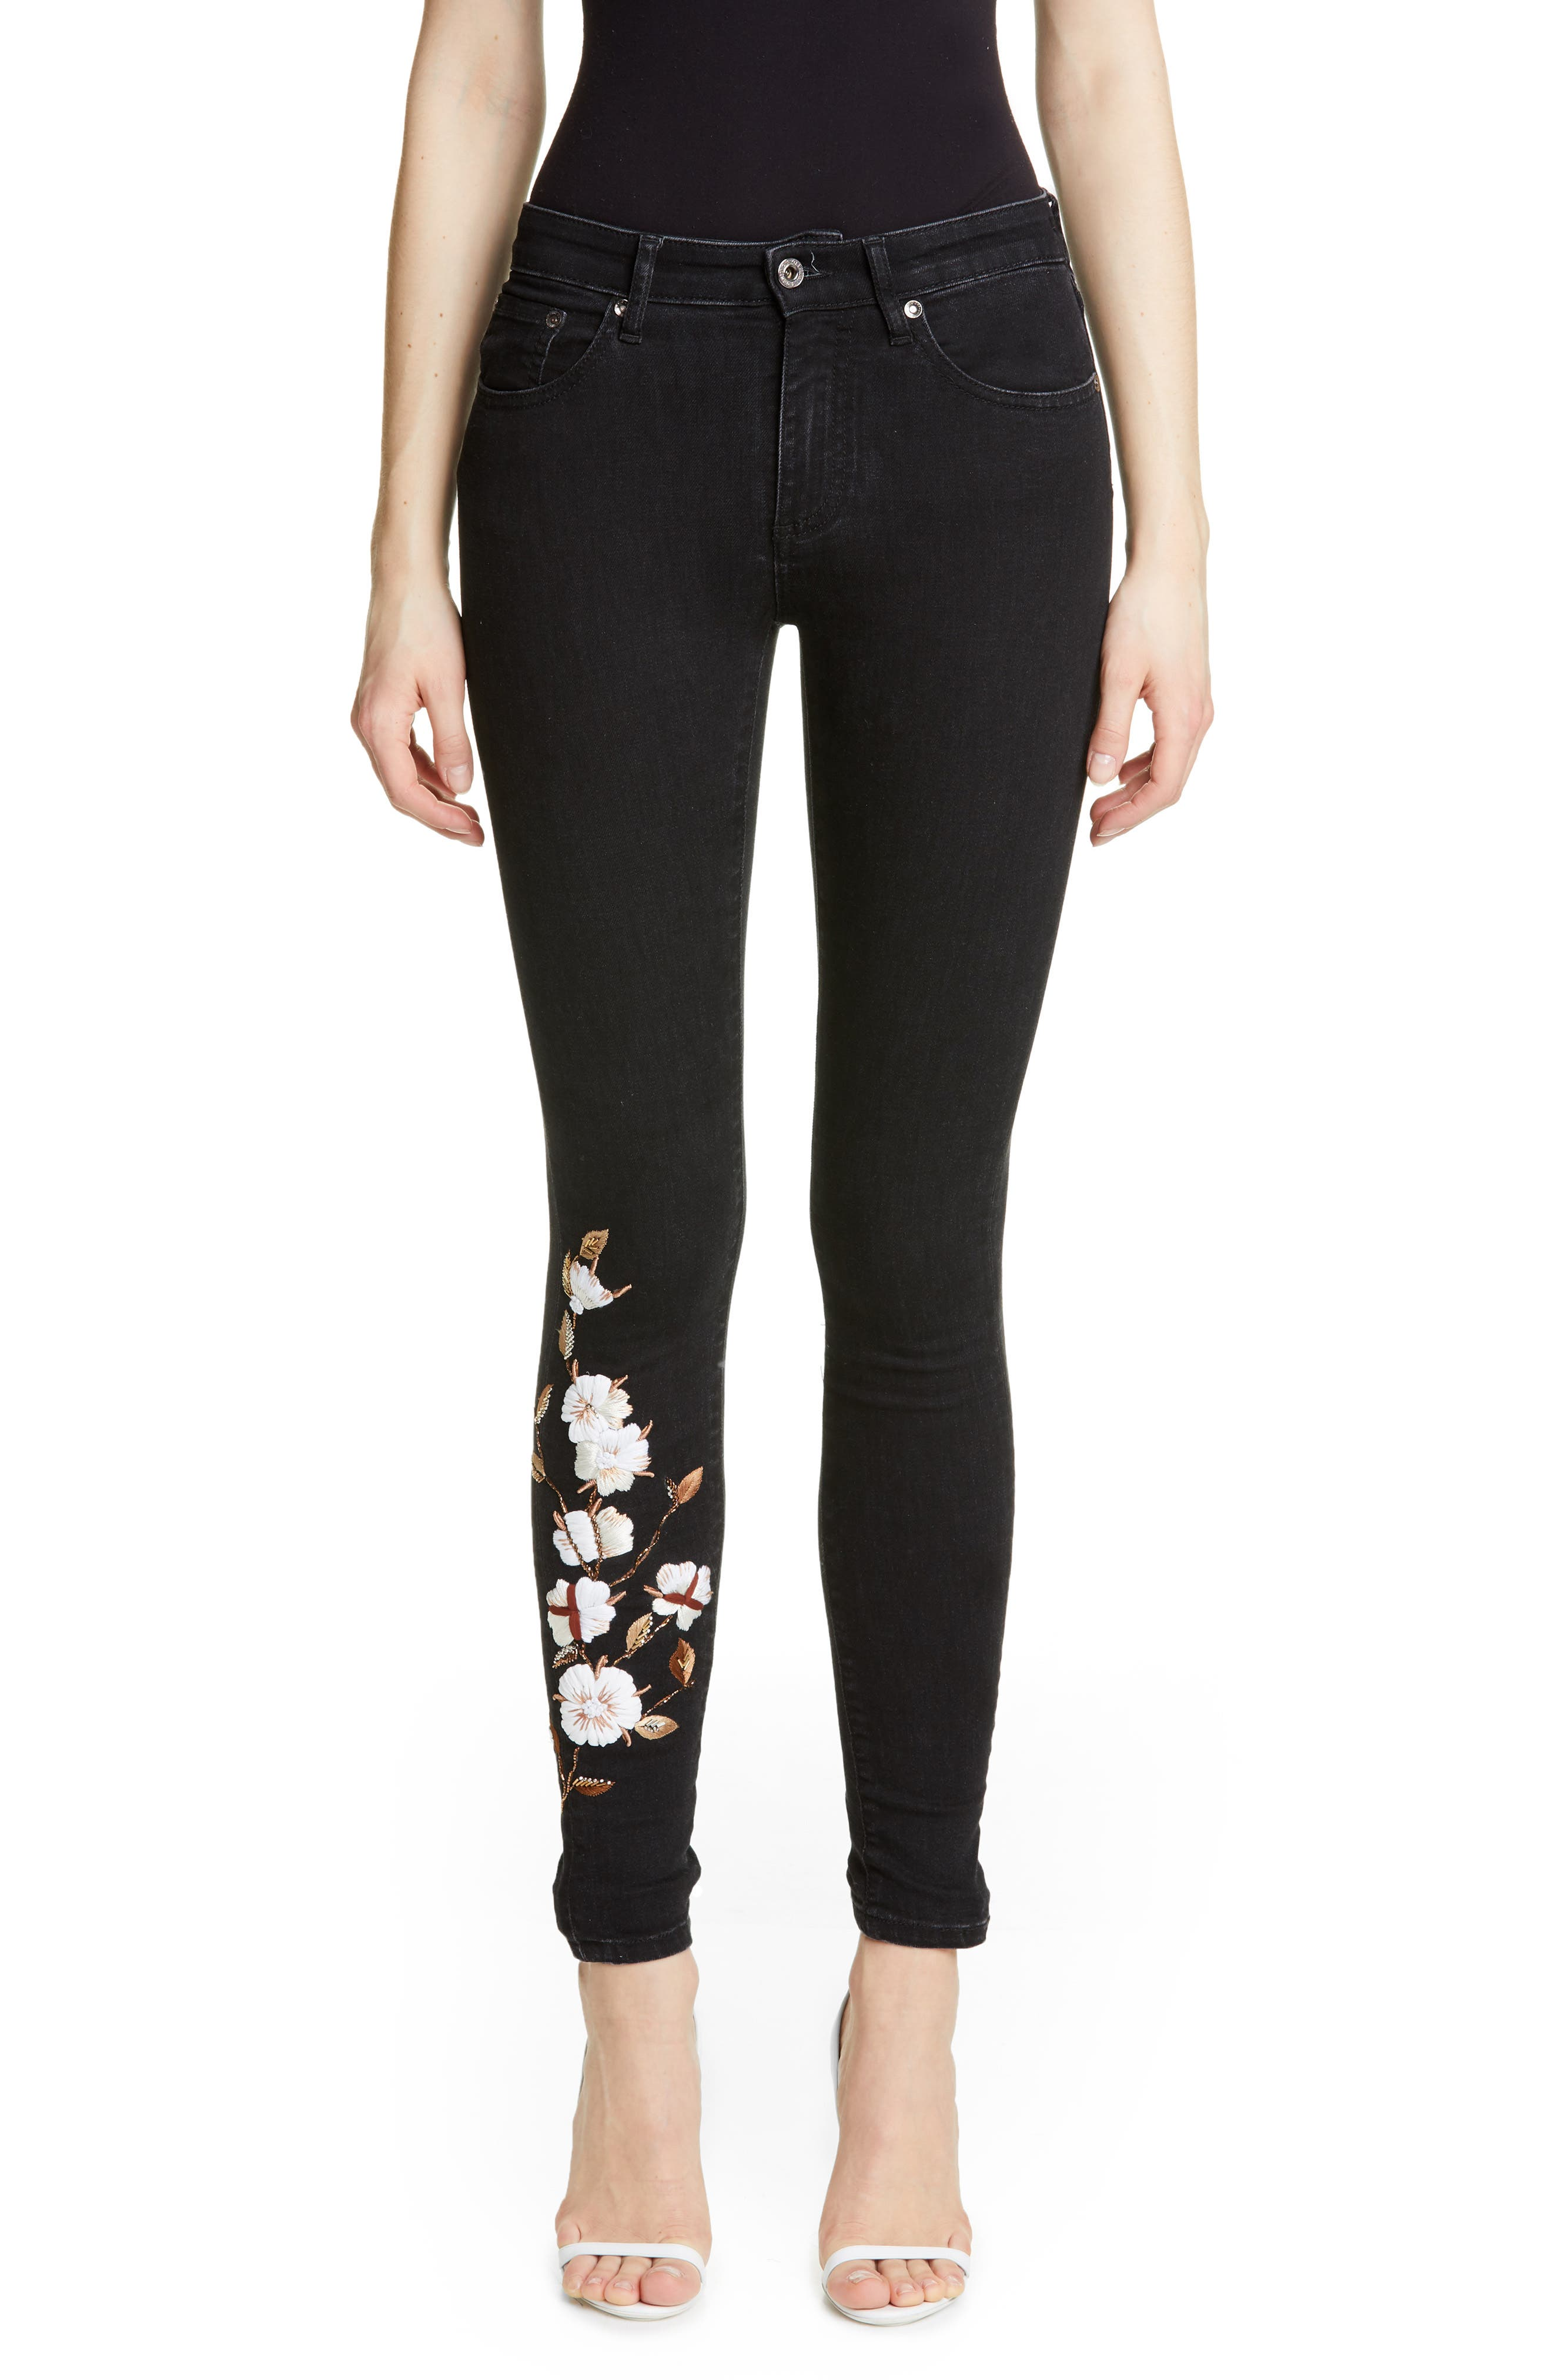 OFF-WHITE, Floral Embroidered Diagonal Stripe Skinny Jeans, Main thumbnail 1, color, VINTAGE BLACK